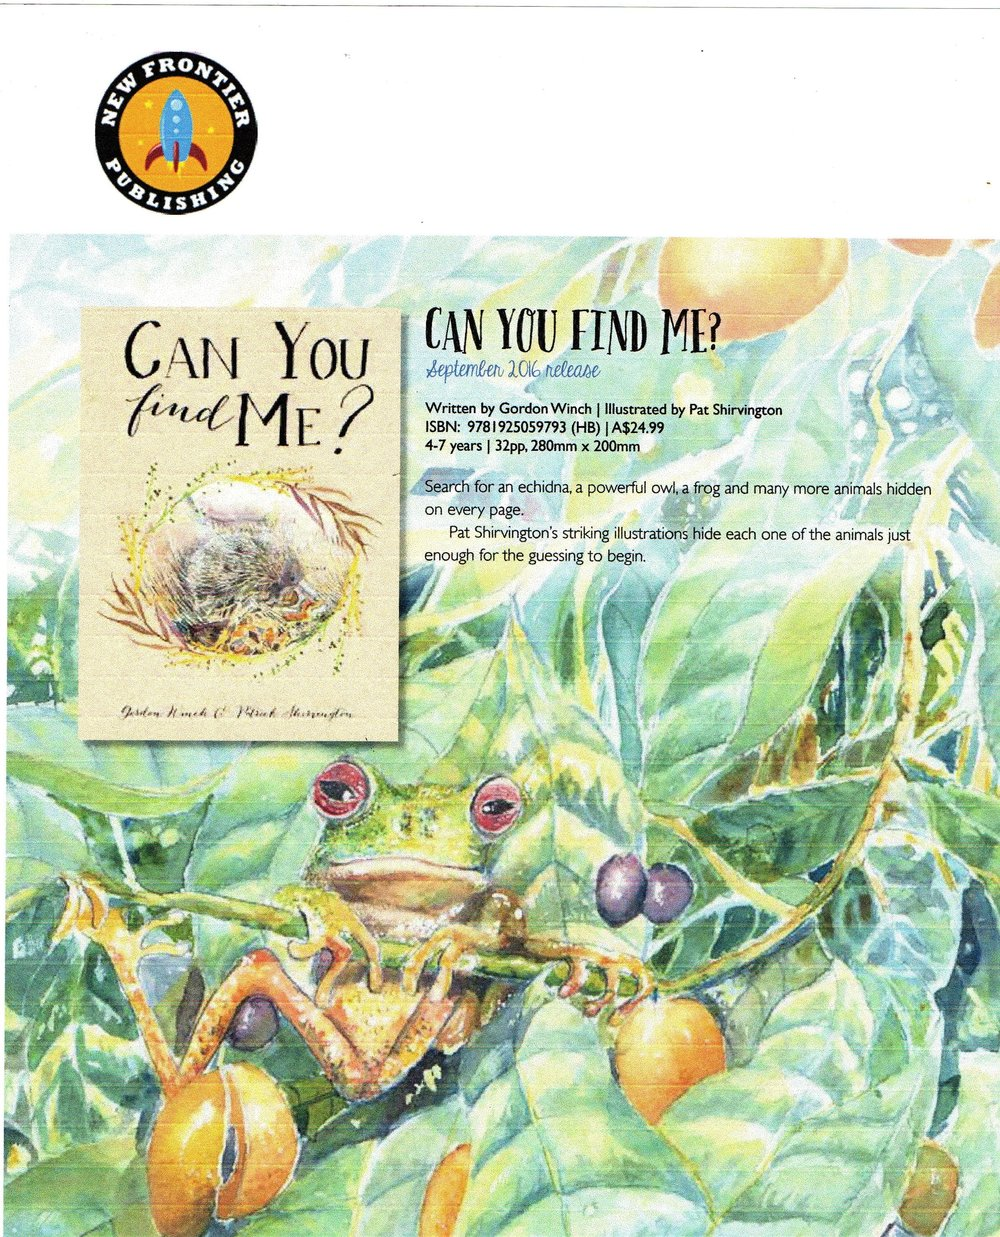 - Can You Find Me?By: Gordon Winch, Patrick Shirvington (Illustrator)Search for an echidna, a powerful owl, a frog and many more animals hidden on every page. Pat Shirvingtons striking illustrations hide each one of the animals just enough for the guessing to begin.